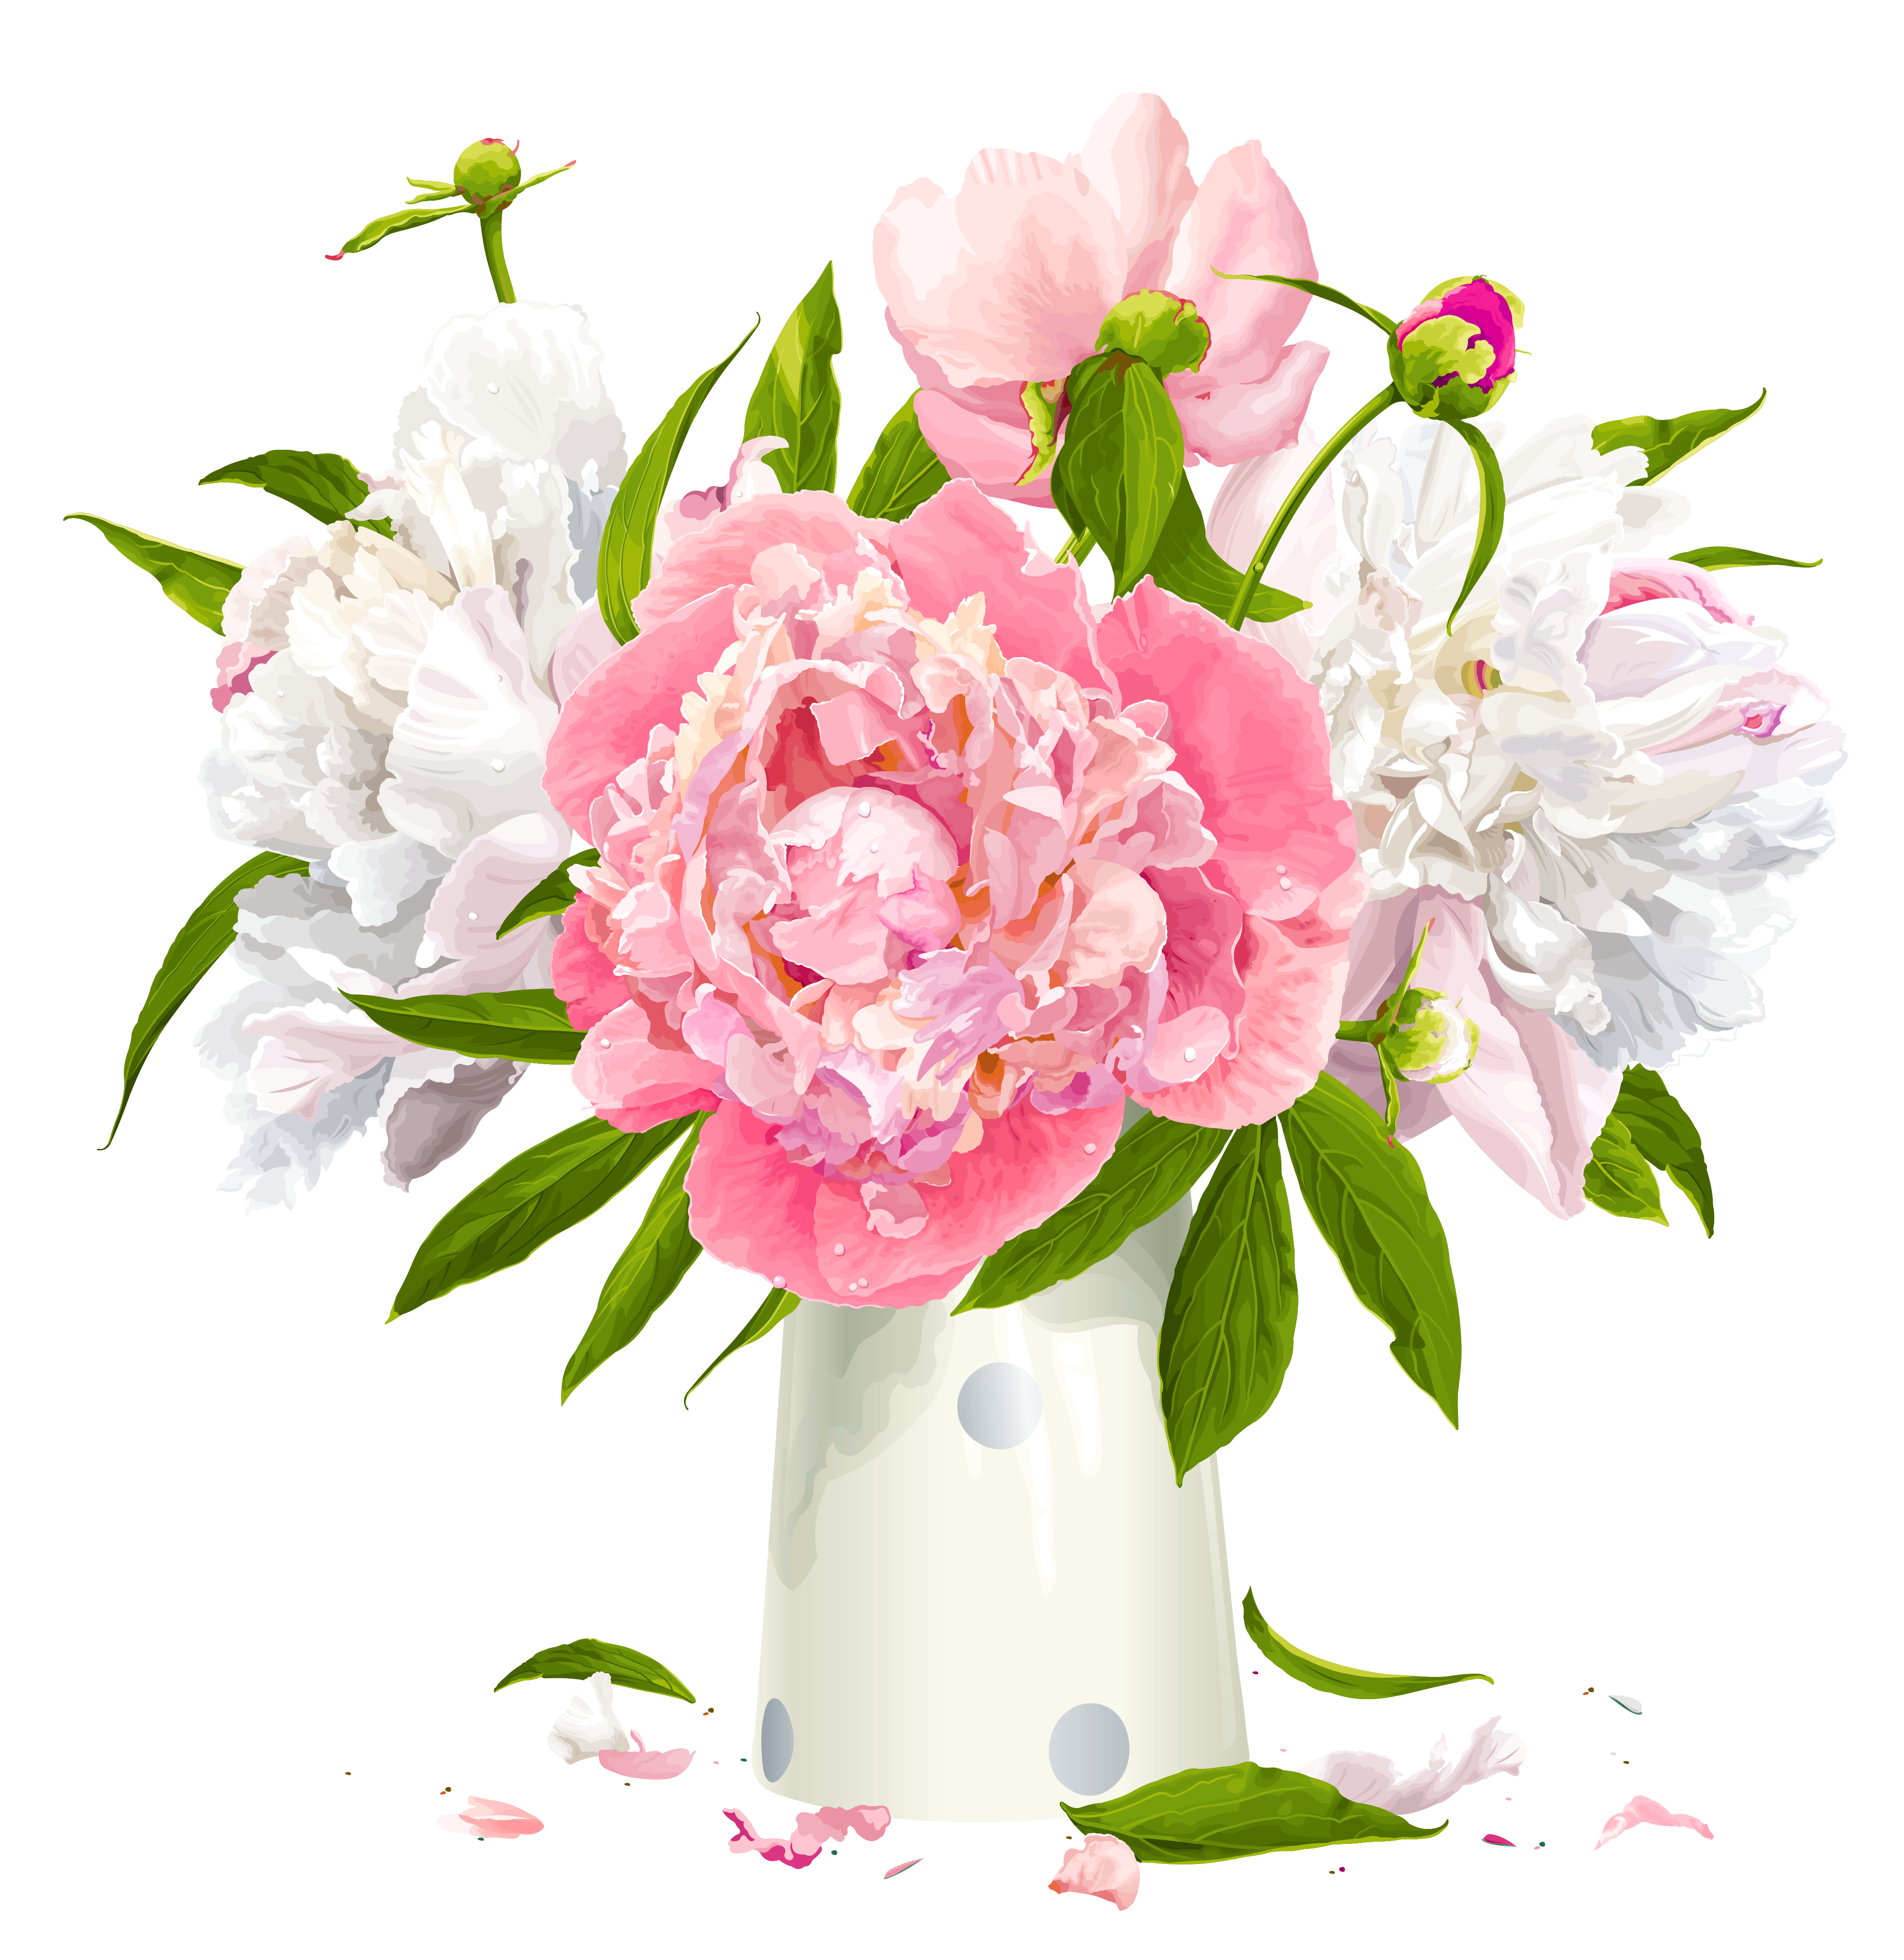 Peony cliparts Flower clipart, Flowers, Peonies